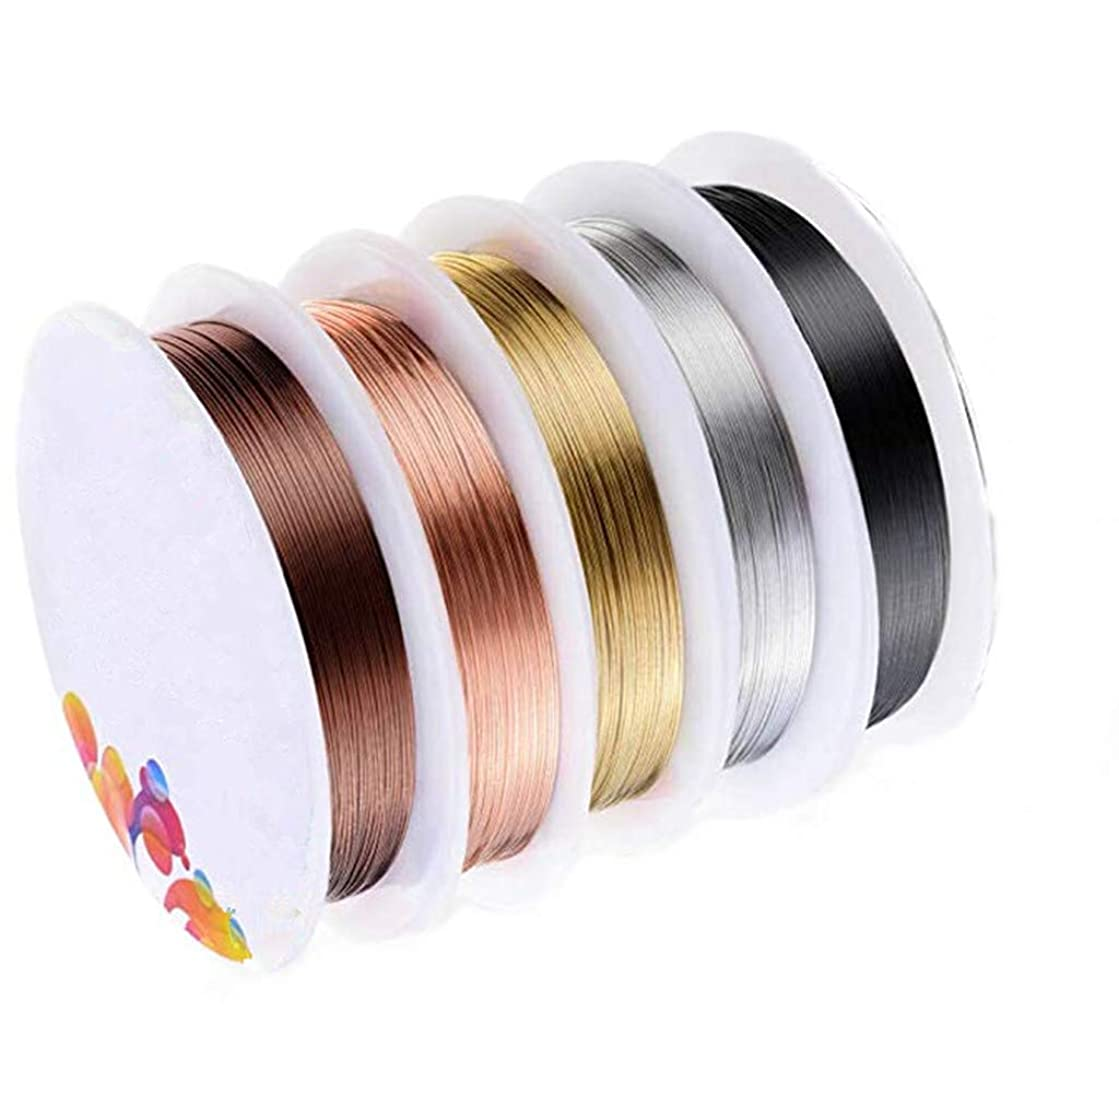 Kasmena 5 Rolls Jewelry Beading Wire,for Jewelry Making Supplies and Jewelry Repair,5 Assorted Colors